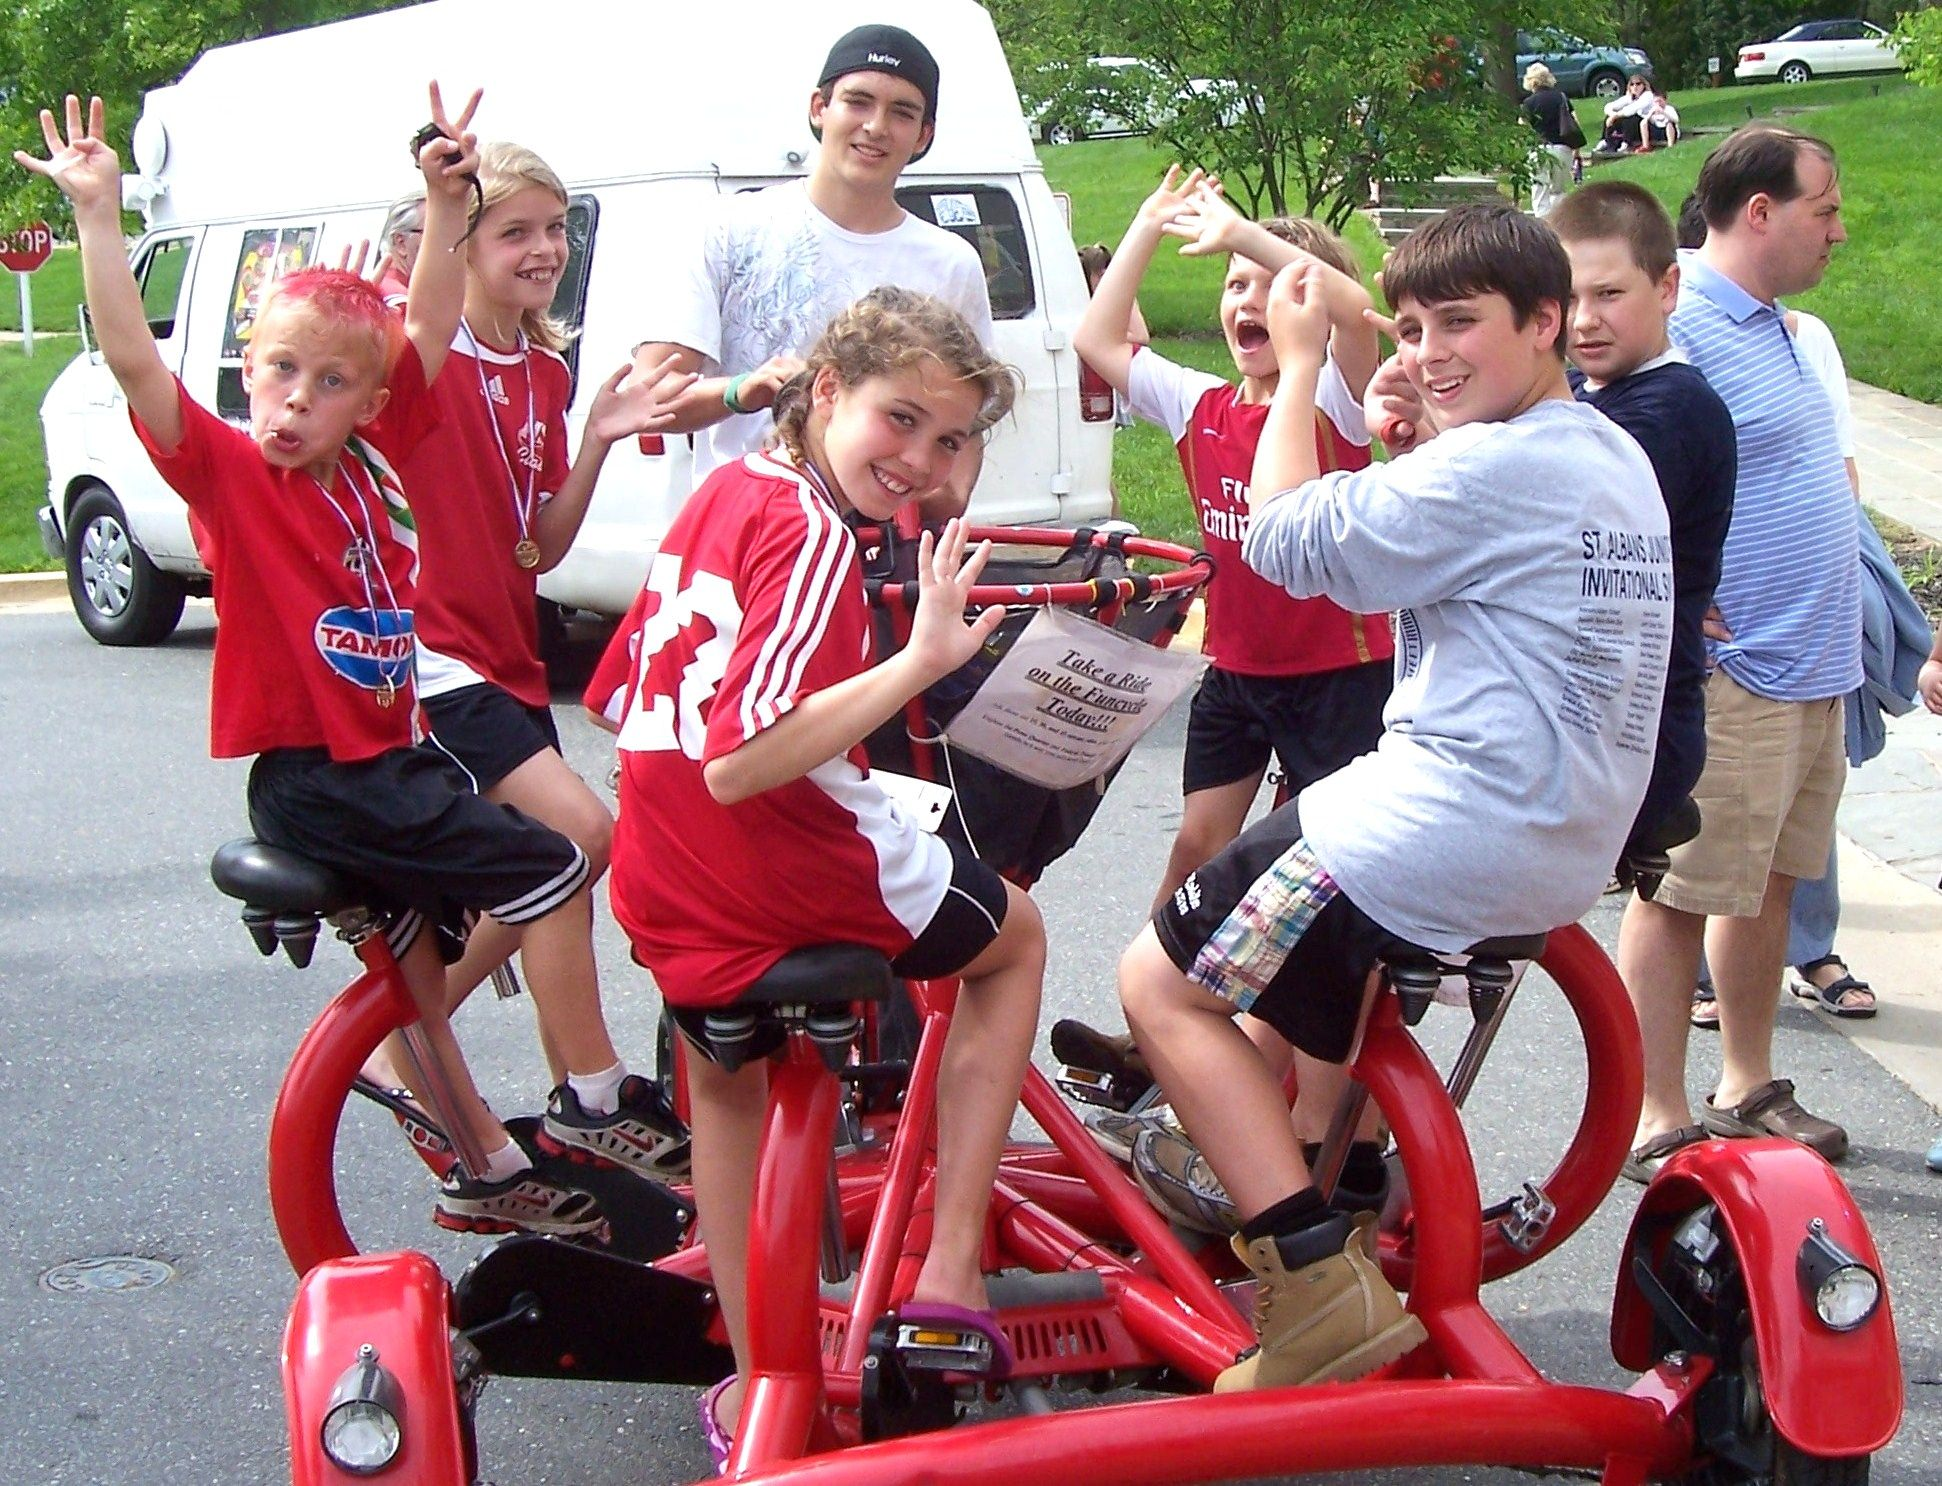 This Is A 7 Person Bike Eveyone Pedals And The Bike Rides Like A